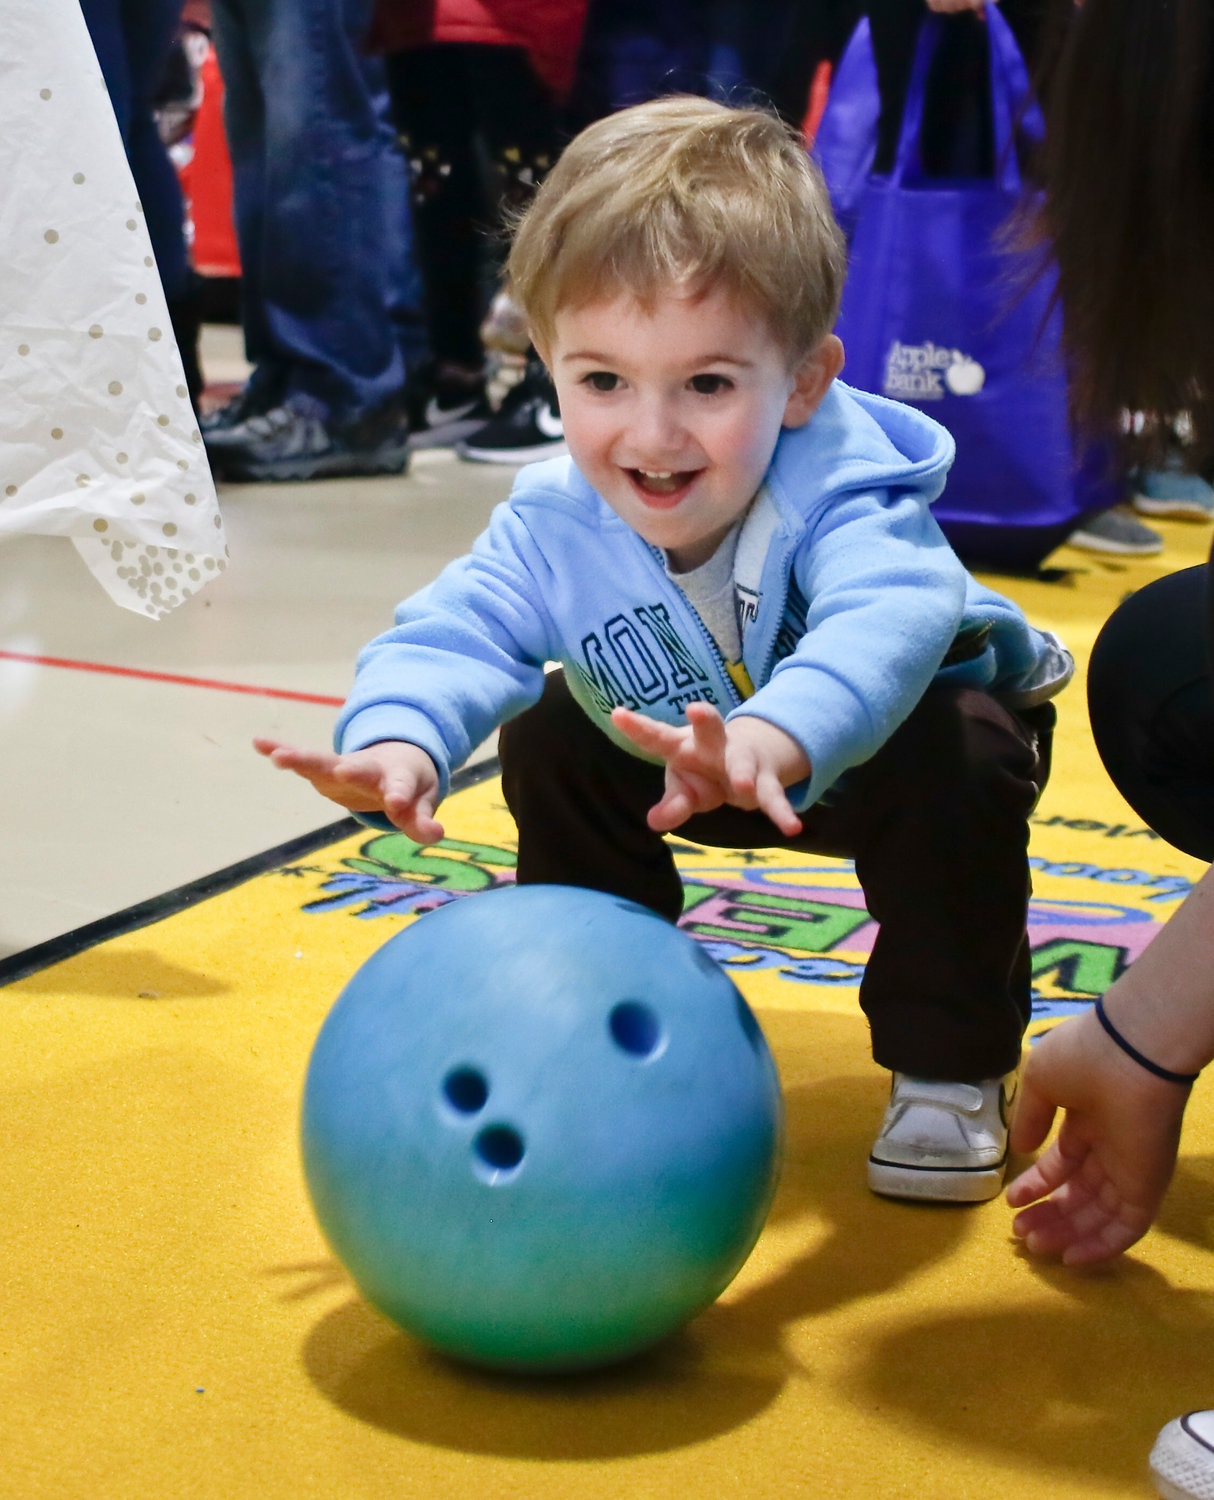 The Maple Family Centers set up a bowling lane for children, and Zachary Wiener, 2, of Oceanside, had fun trying for a strike.